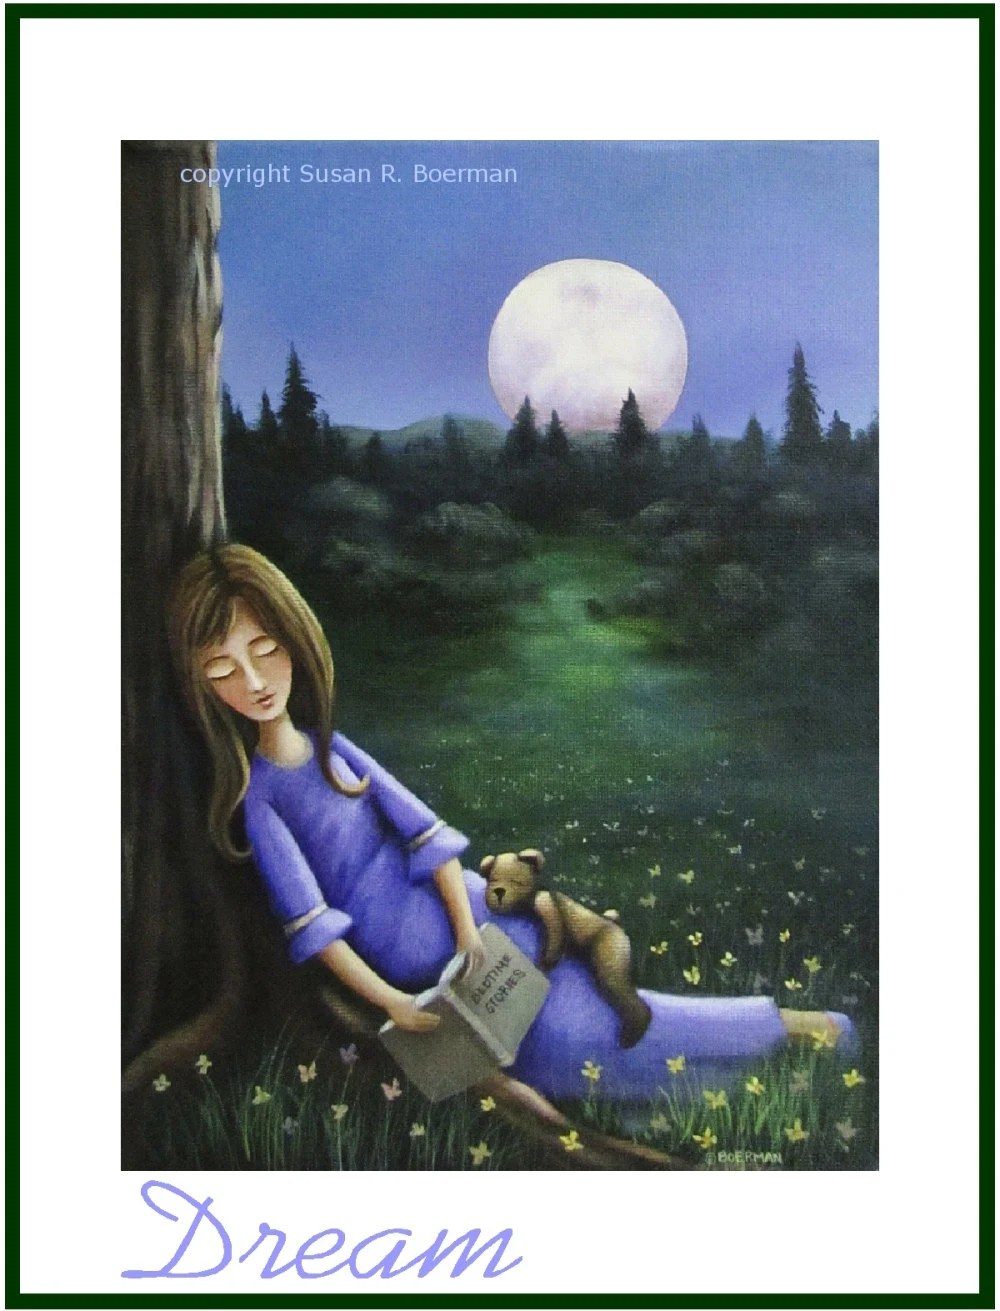 Blank Note Card - Sleeping Girl with Purple Dress, Bedtime Story book and Teddy Bear at Night Under a Full Moon - susanville